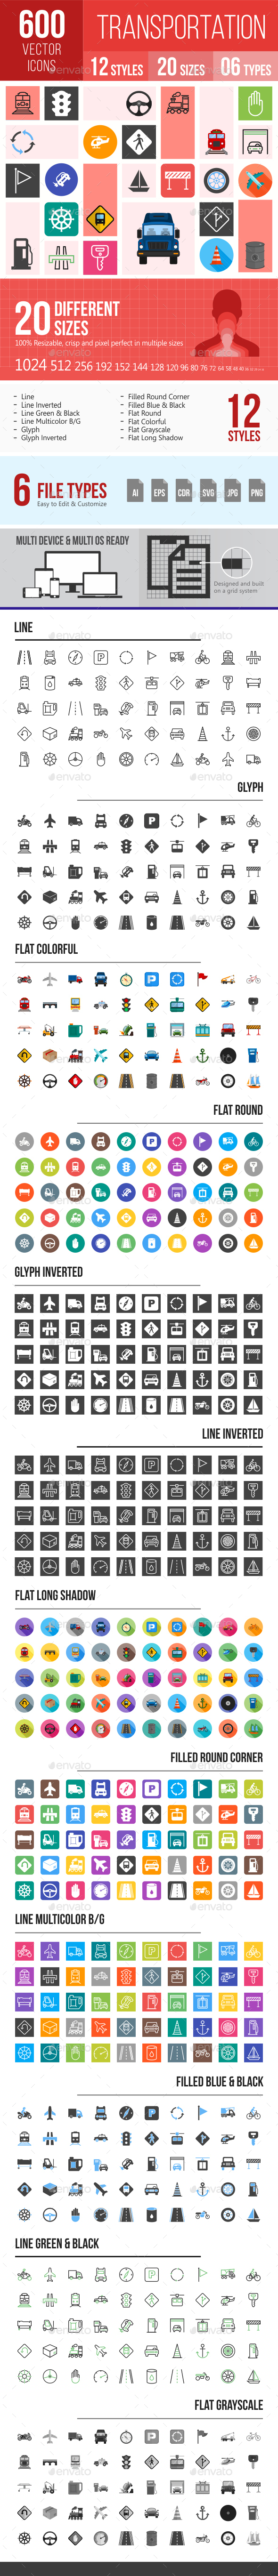 600 Transport Icons - Icons